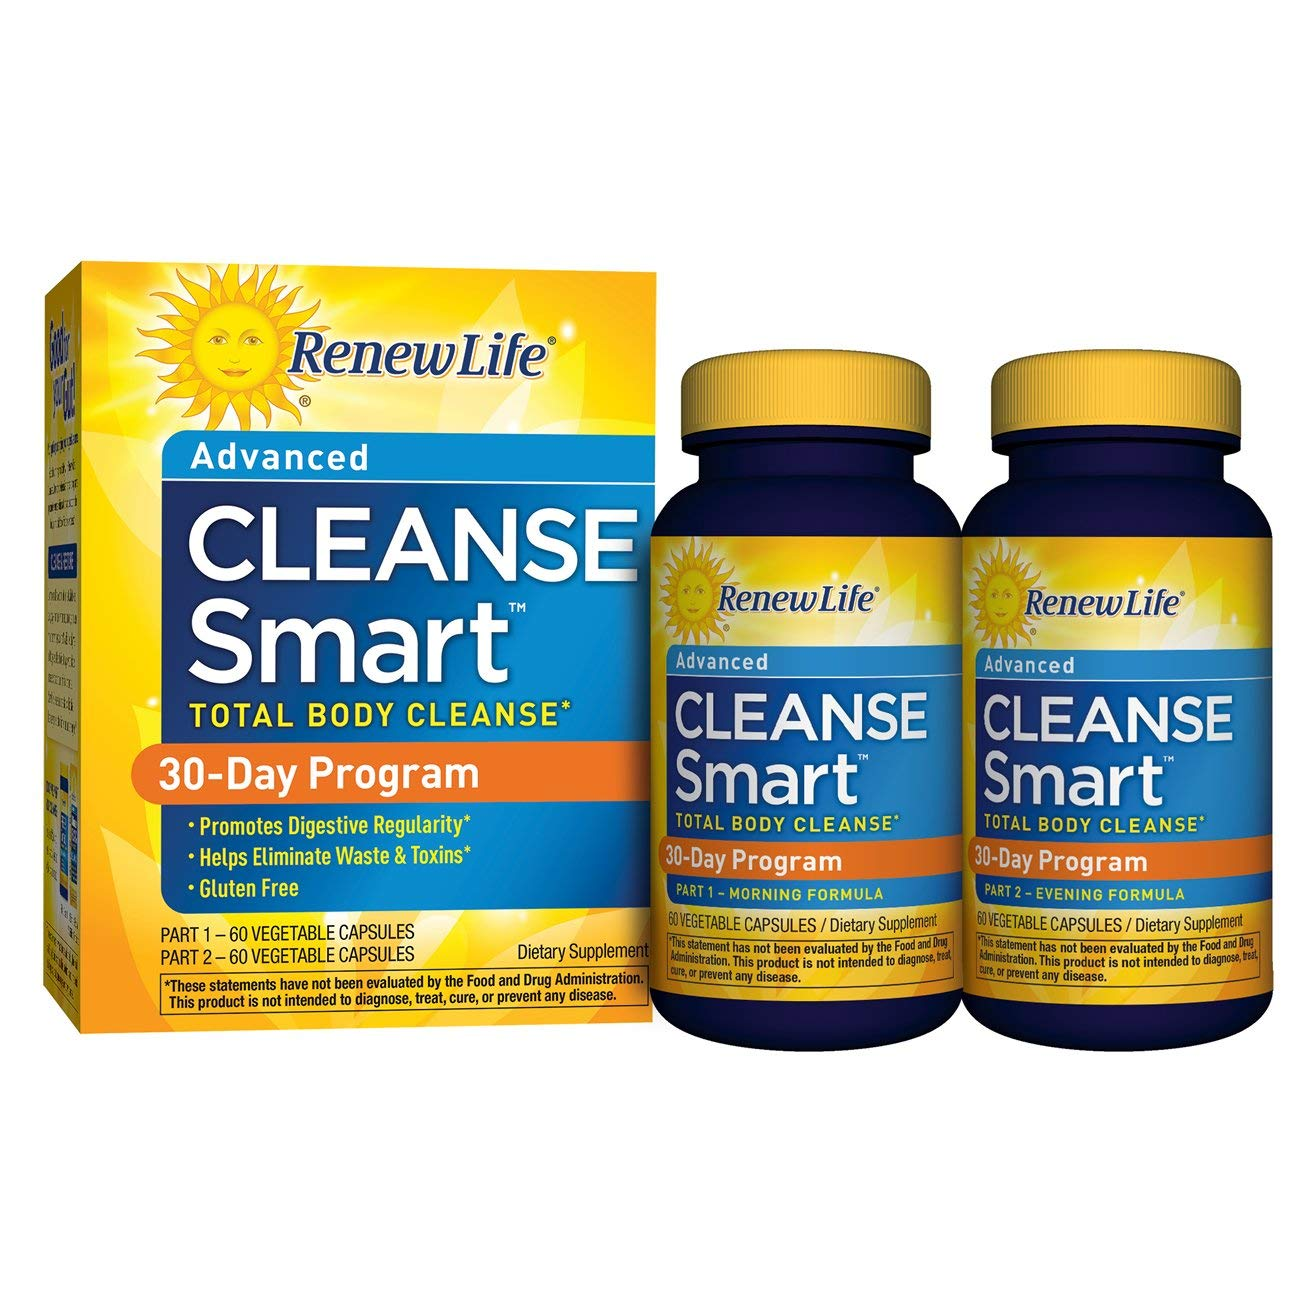 Renew Life Adult Cleanse - Smart Total Body Cleanse, Advanced - 2 Part, 30-Day Program - 120 Vegetable Capsules